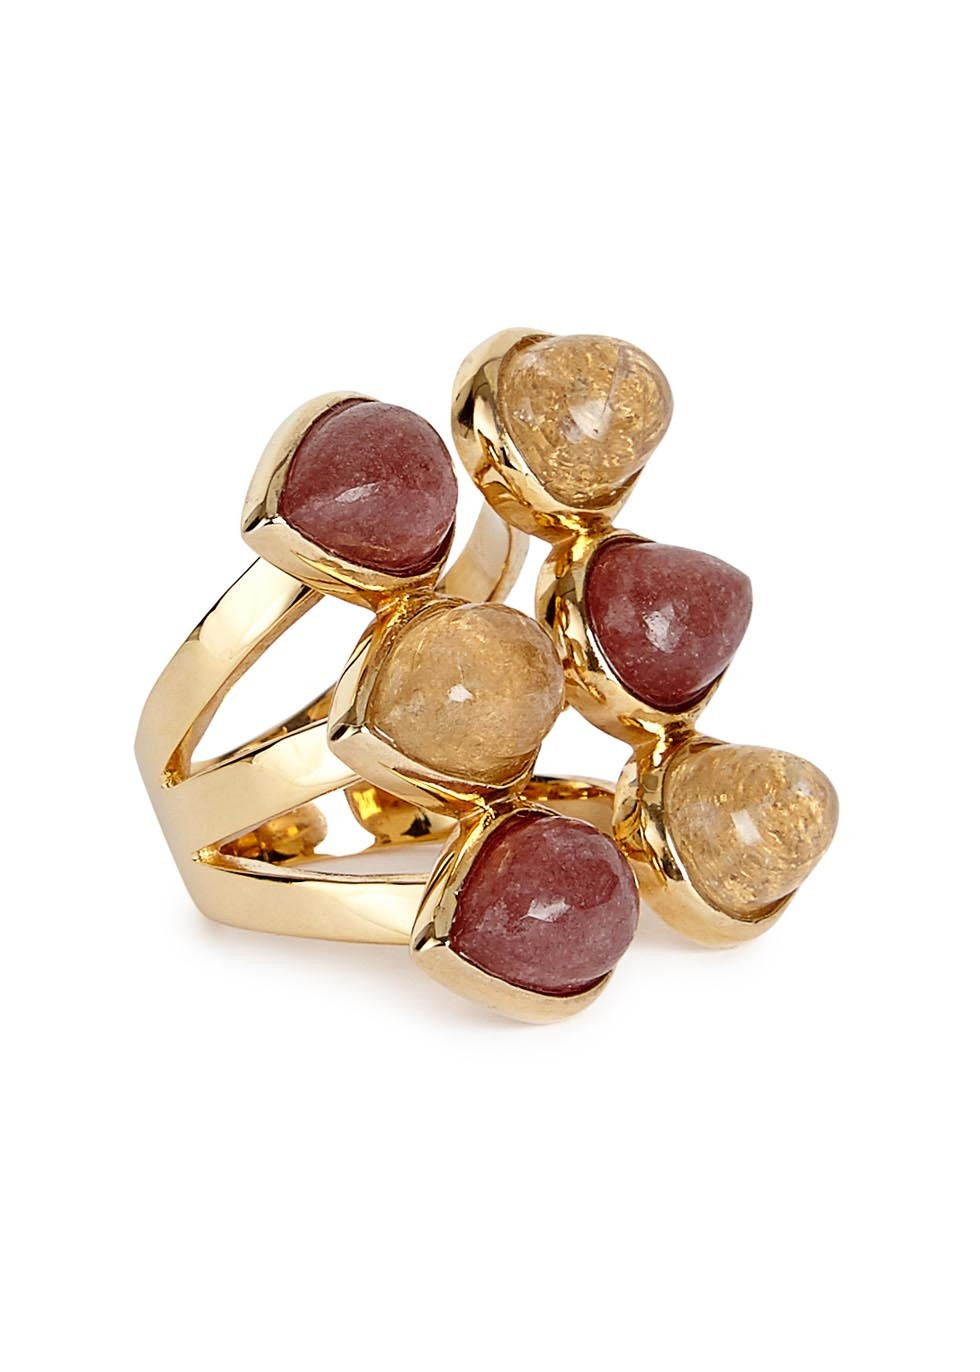 Temple Muse Gold Plated Quartz Ring - predominant colour: gold; occasions: evening, occasion; style: cocktail; size: large/oversized; material: chain/metal; finish: metallic; embellishment: jewels/stone; multicoloured: multicoloured; season: a/w 2016; wardrobe: event